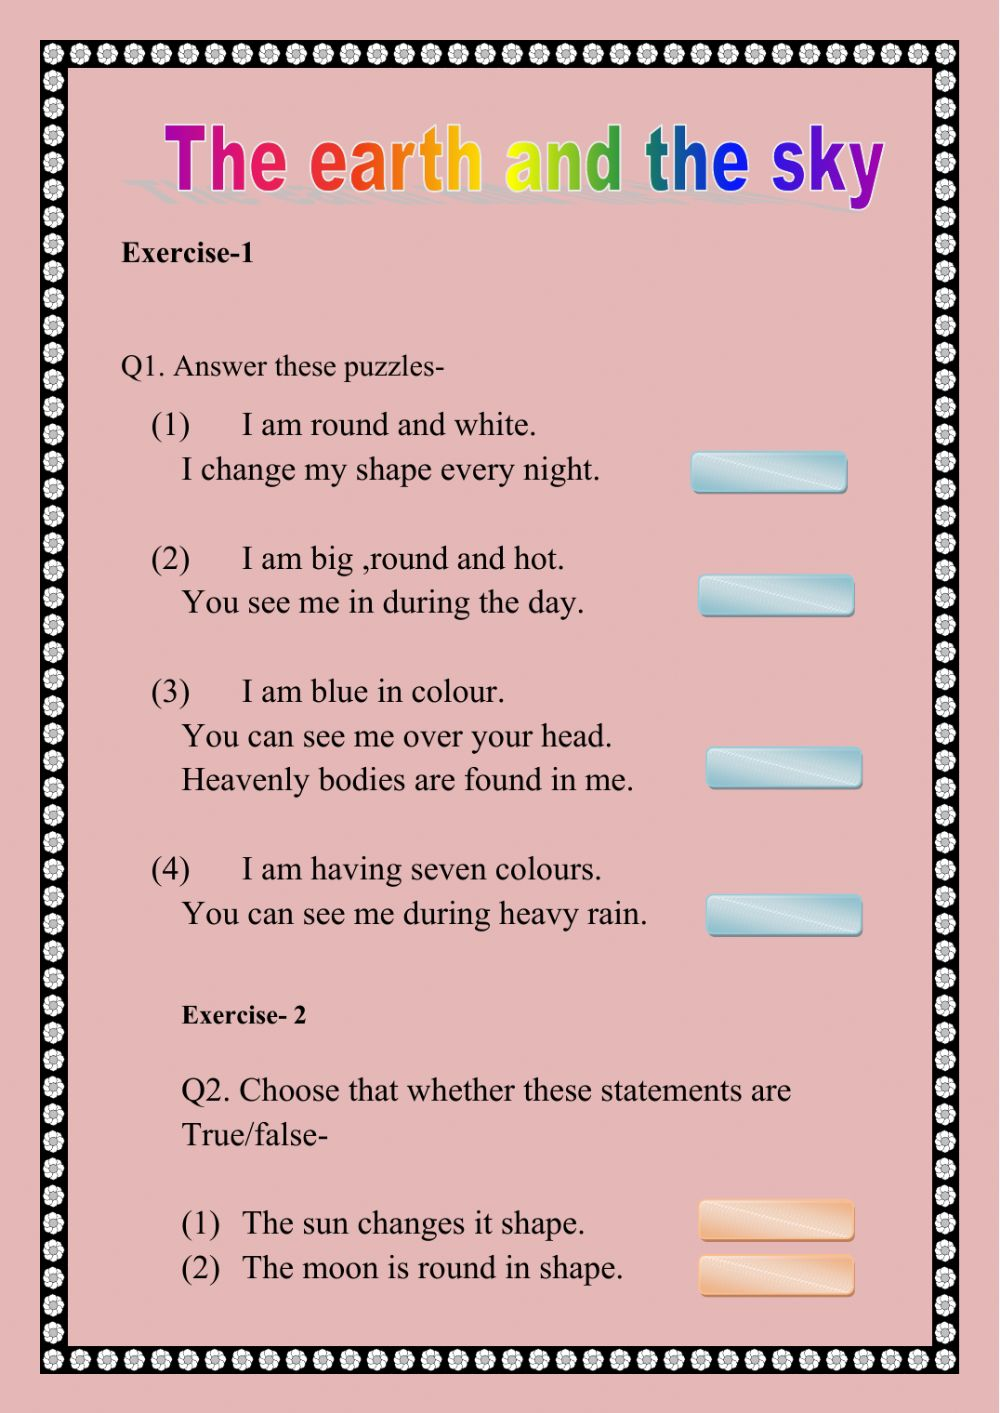 medium resolution of The earth and the sky worksheet